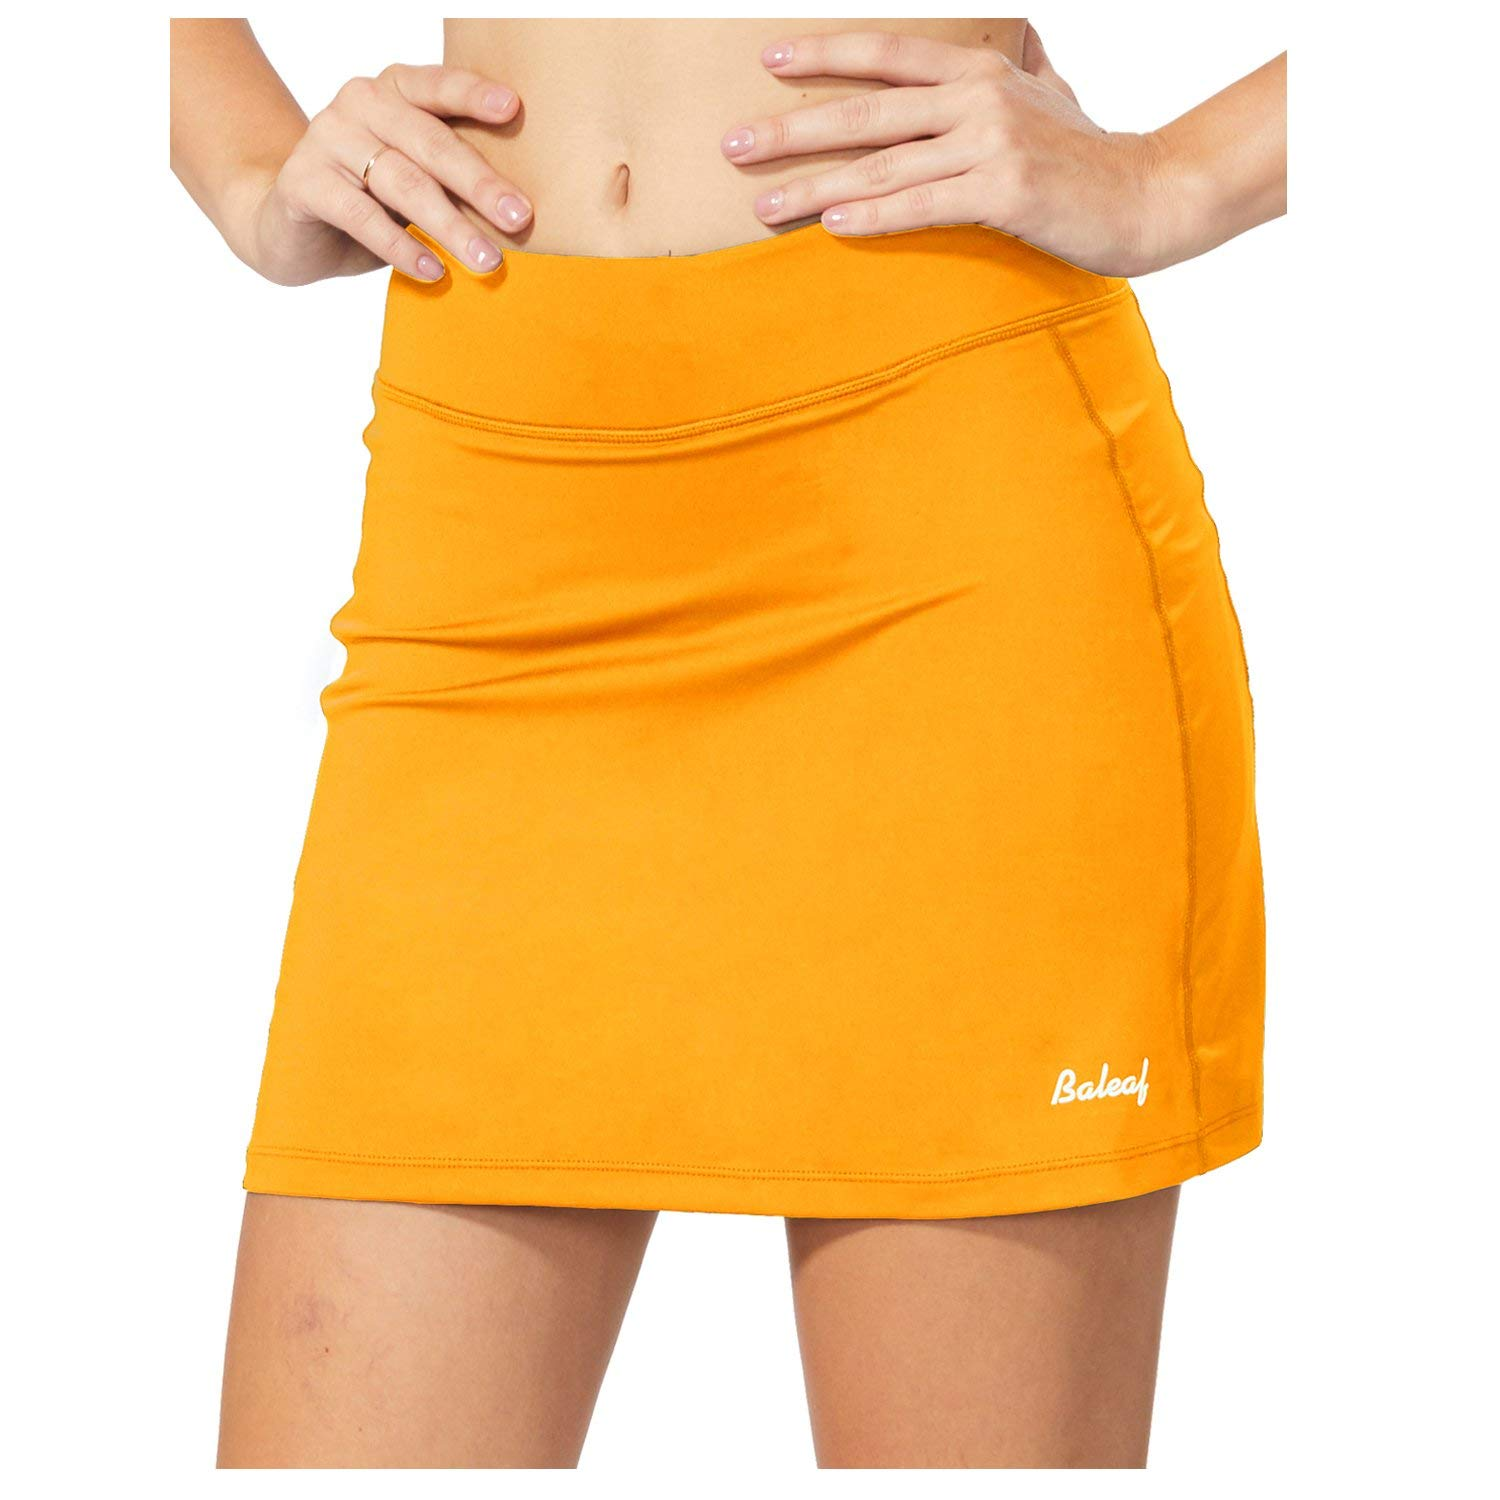 BALEAF Women's Active Athletic Skort Lightweight Skirt with Pockets for Running Tennis Golf Workout Yellow Size XS by BALEAF